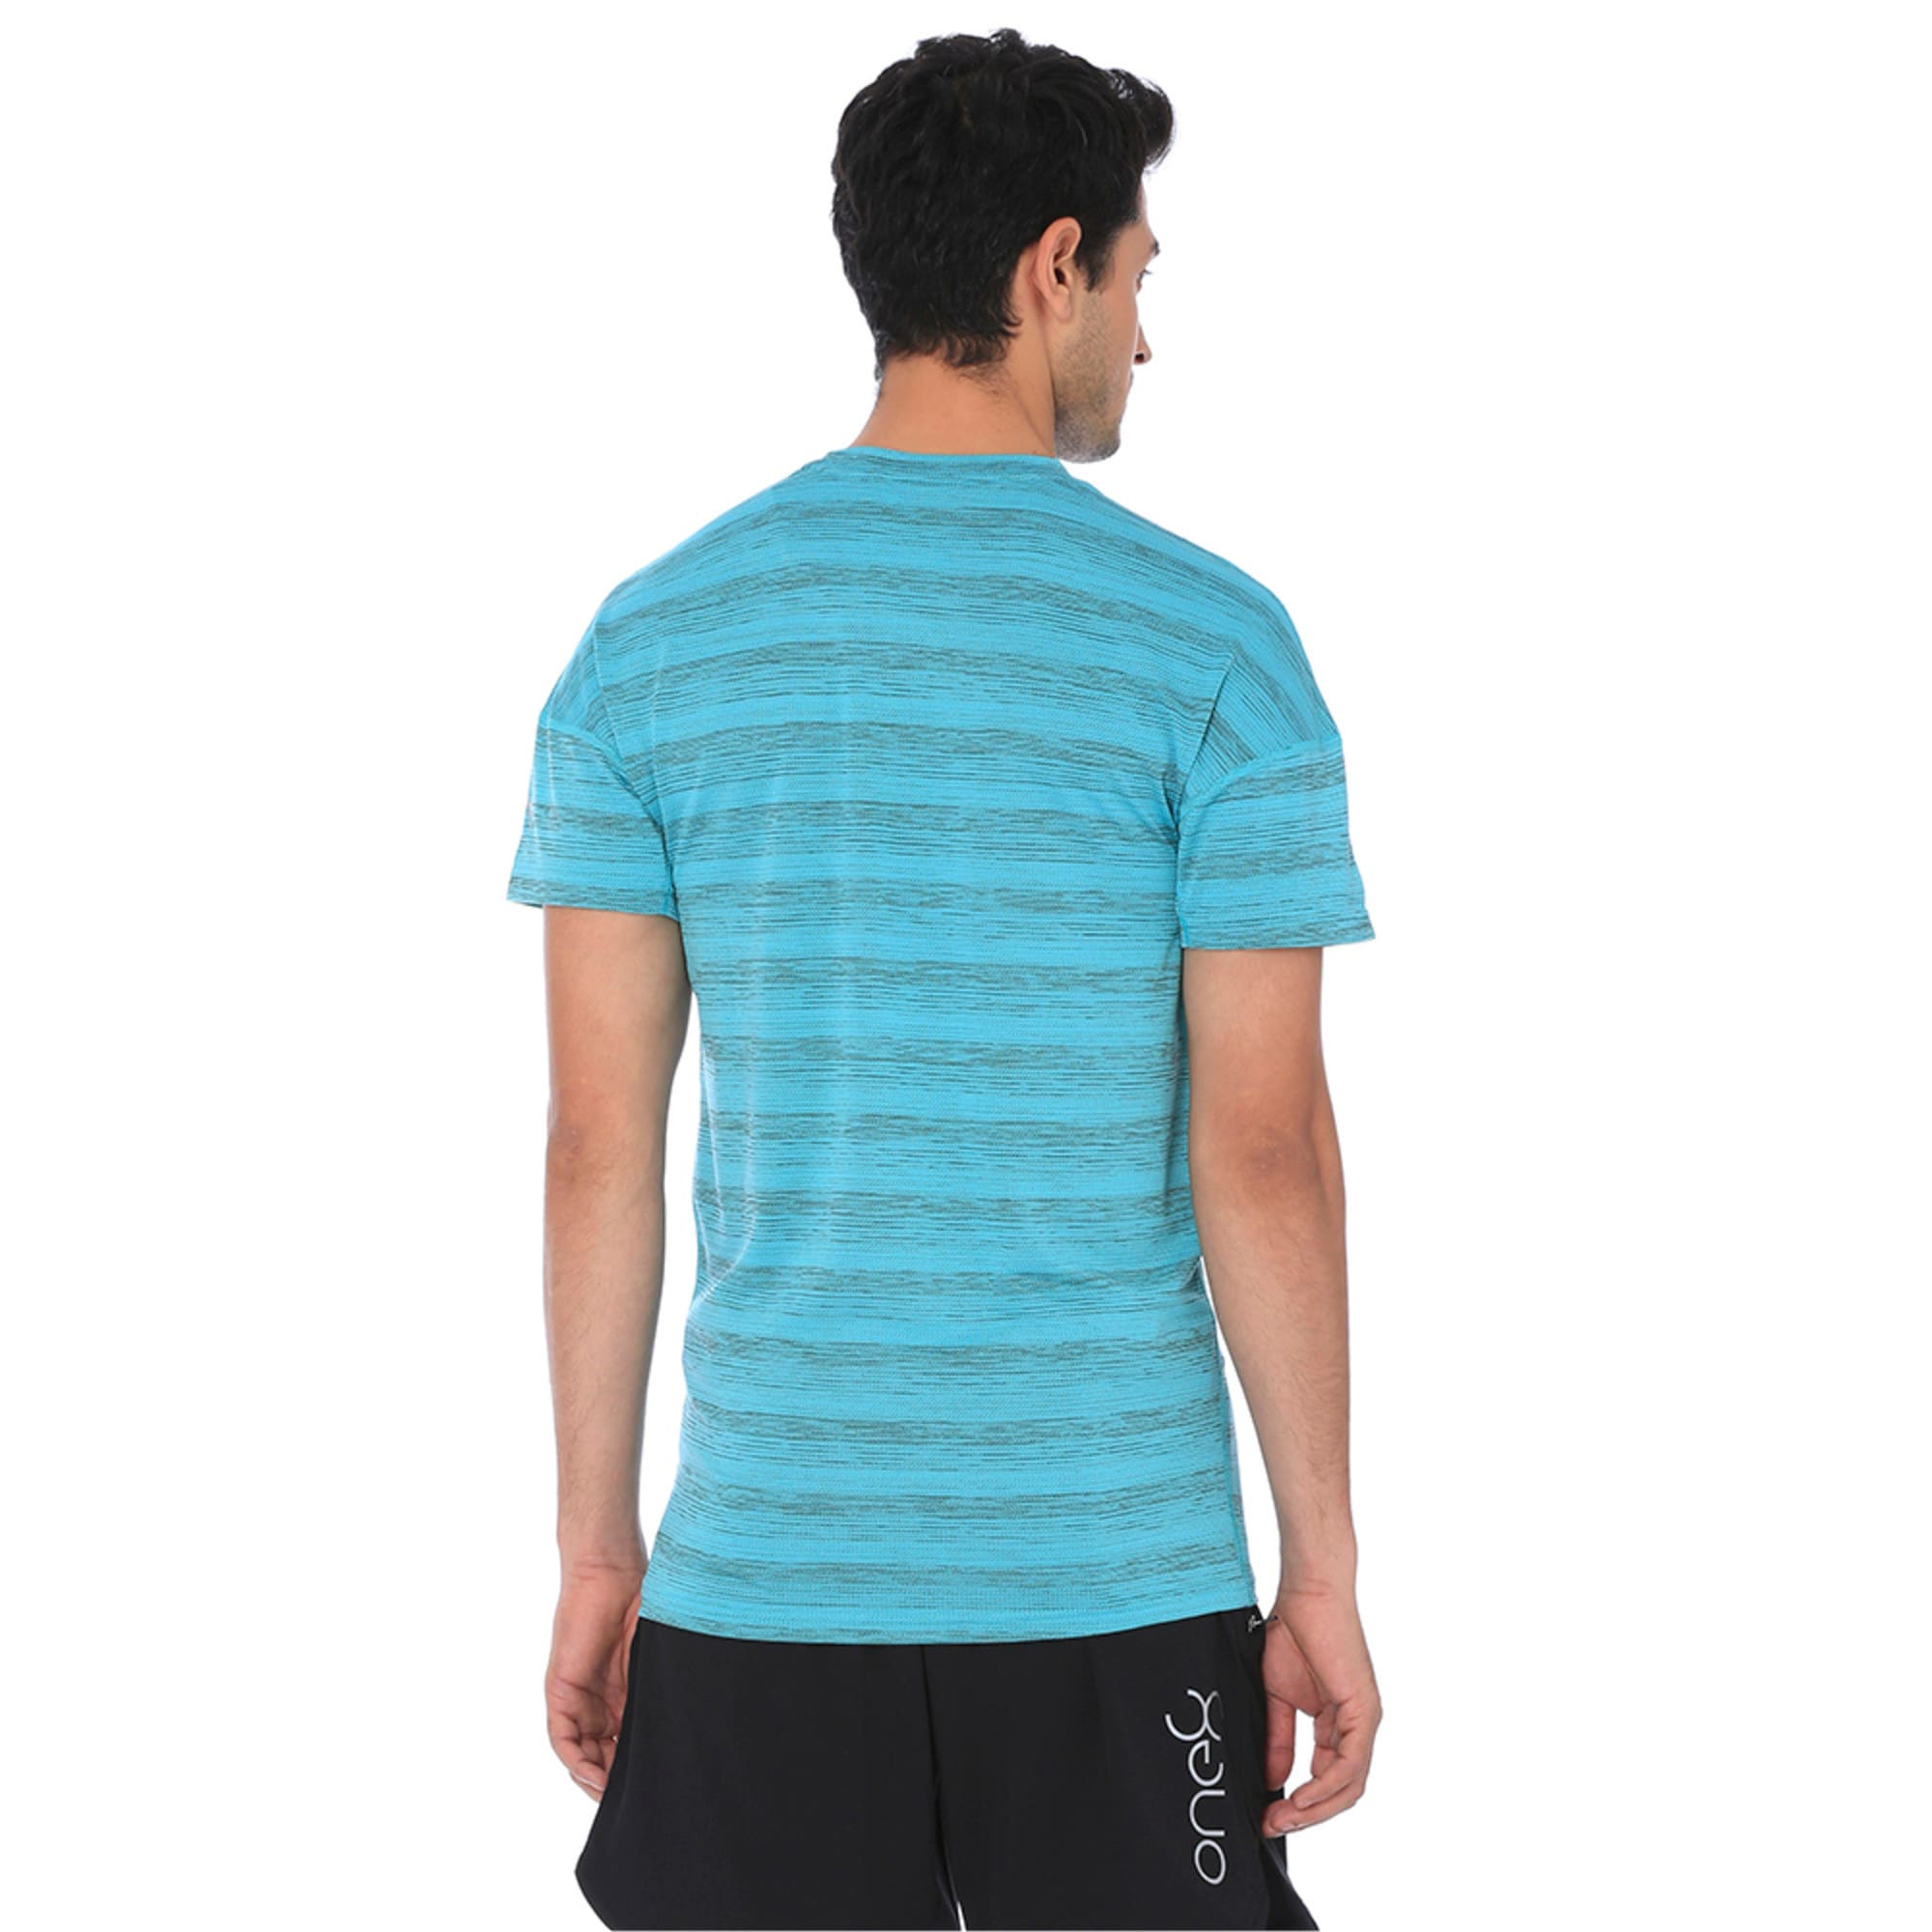 Thumbnail 5 of one8 Active Men's Printed Tee, Blue Turquoise Heather, medium-IND